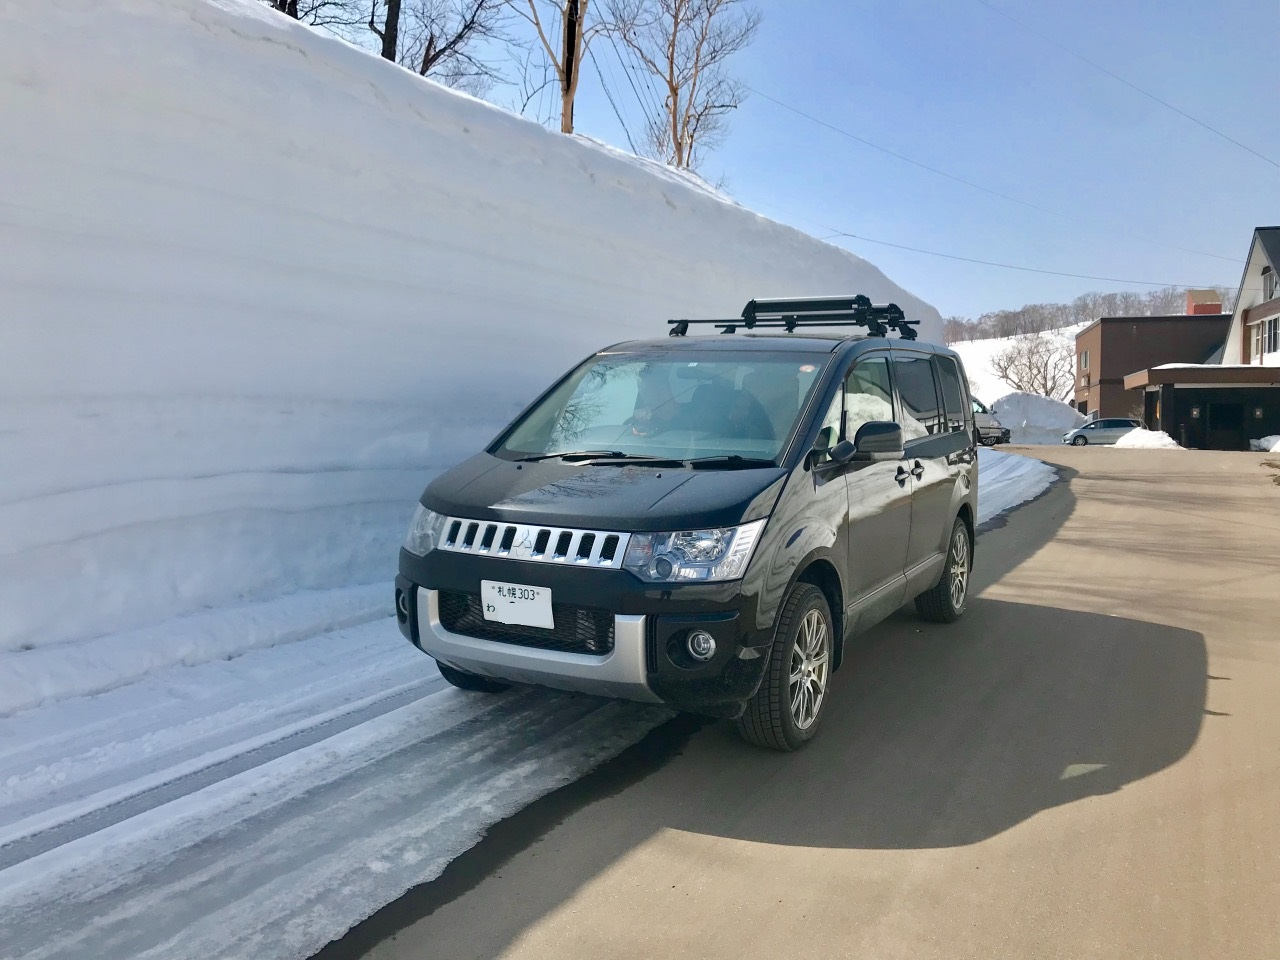 We had a fantastic 10 days,driving the Delica from Chitosea toGrand Hirafu, skiing and sightseeing